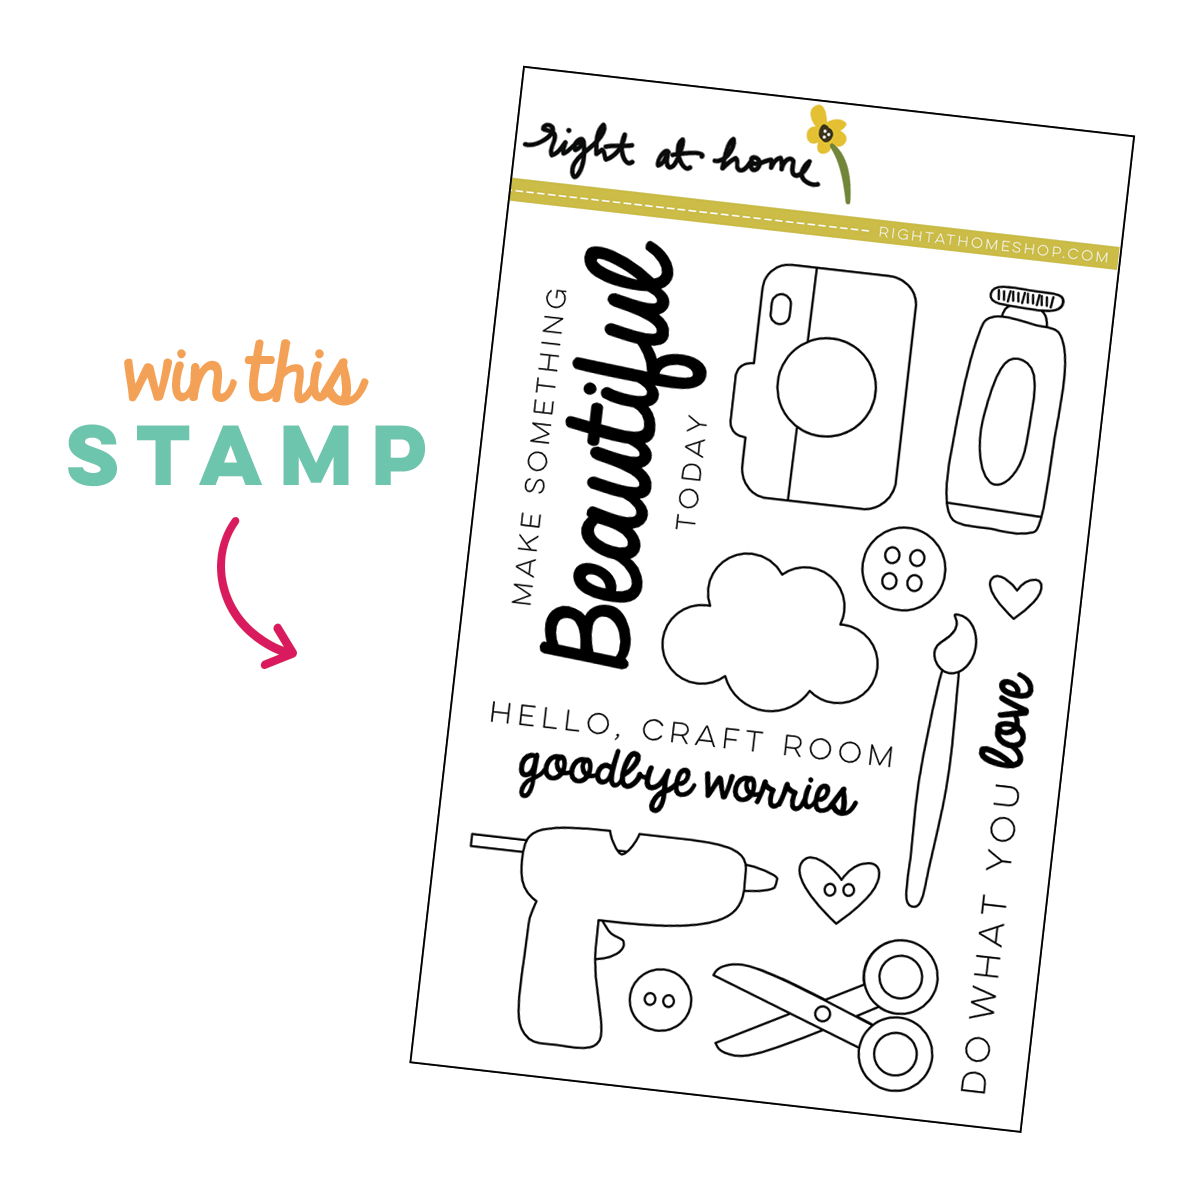 Win this stamp!